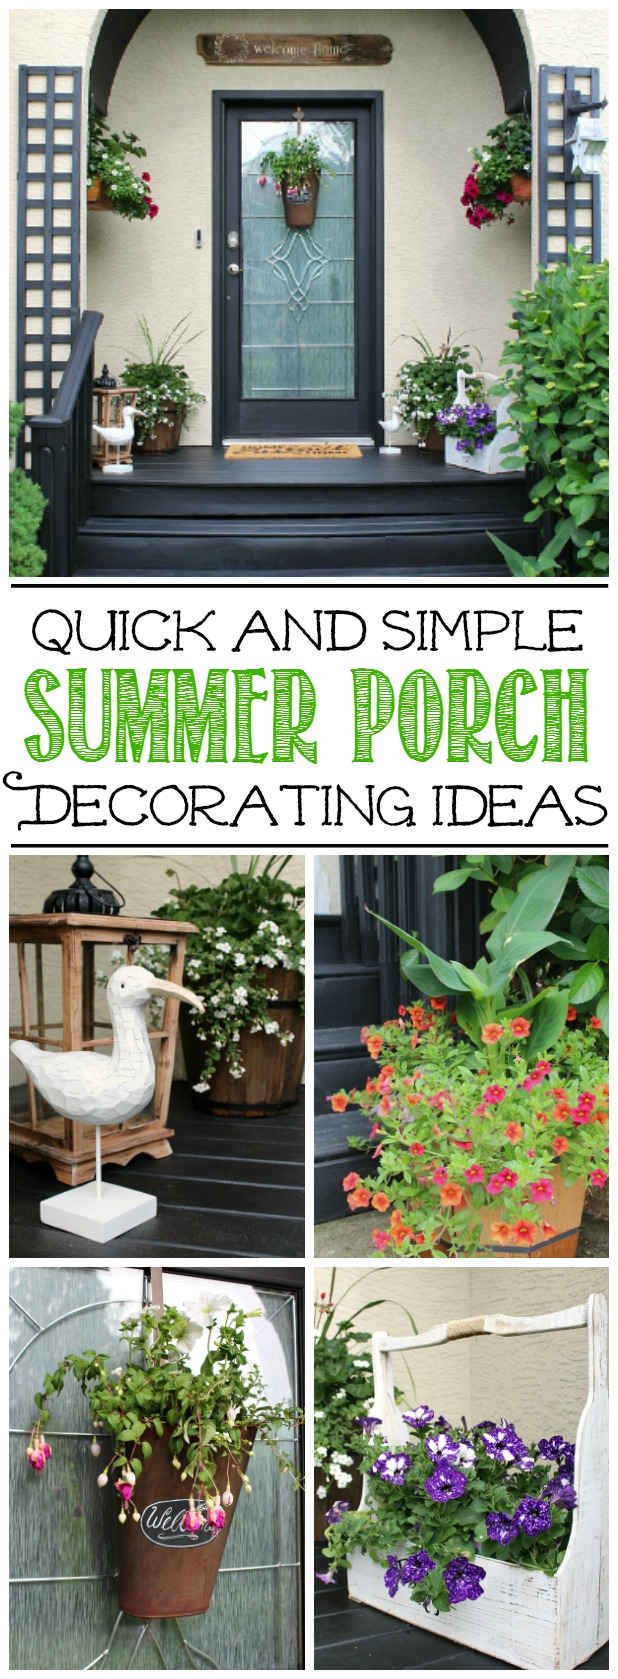 Simple summer decorating ideas for your front porch or patio. Beautiful!